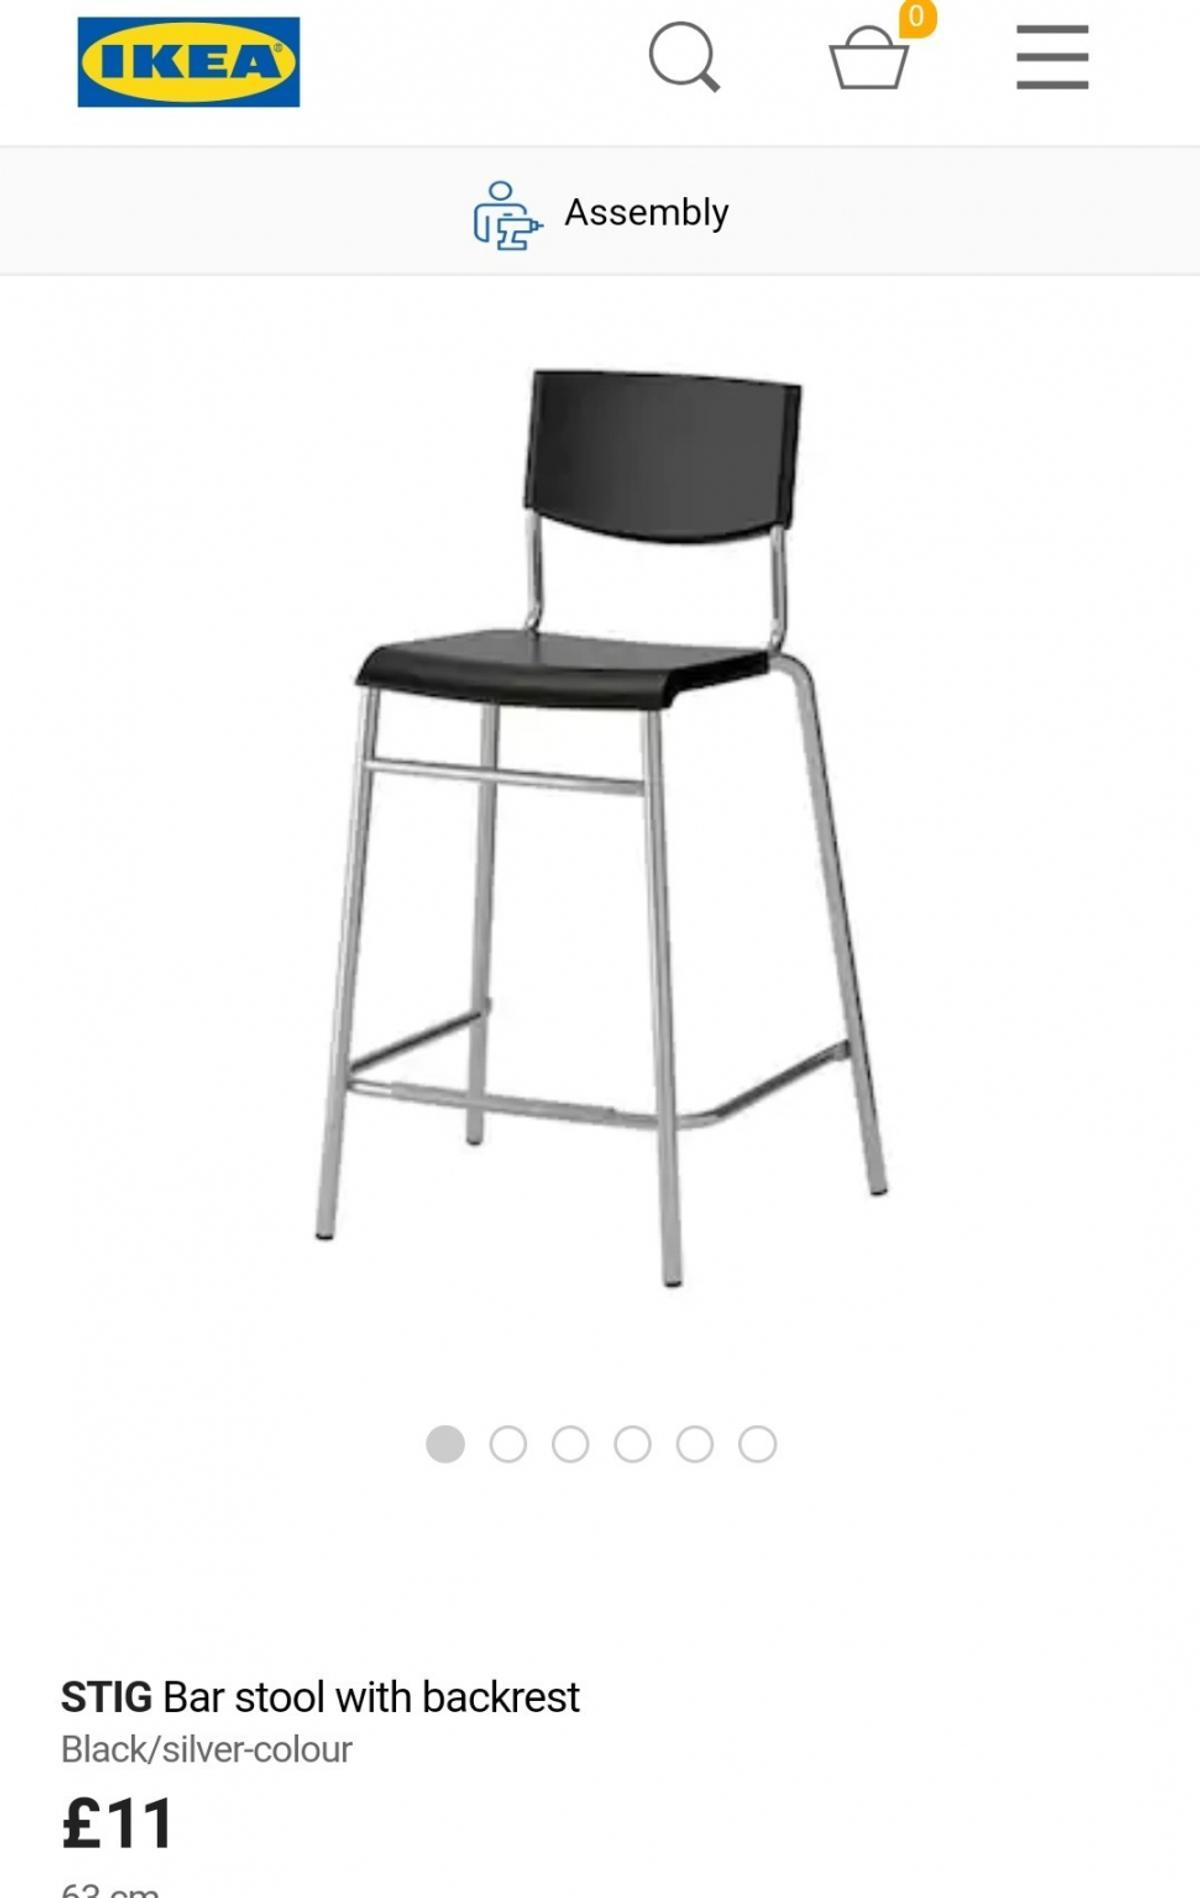 Ikea Bank Hotline Ikea Stig Barstool Black Silver Backrest 65cm In E15 London